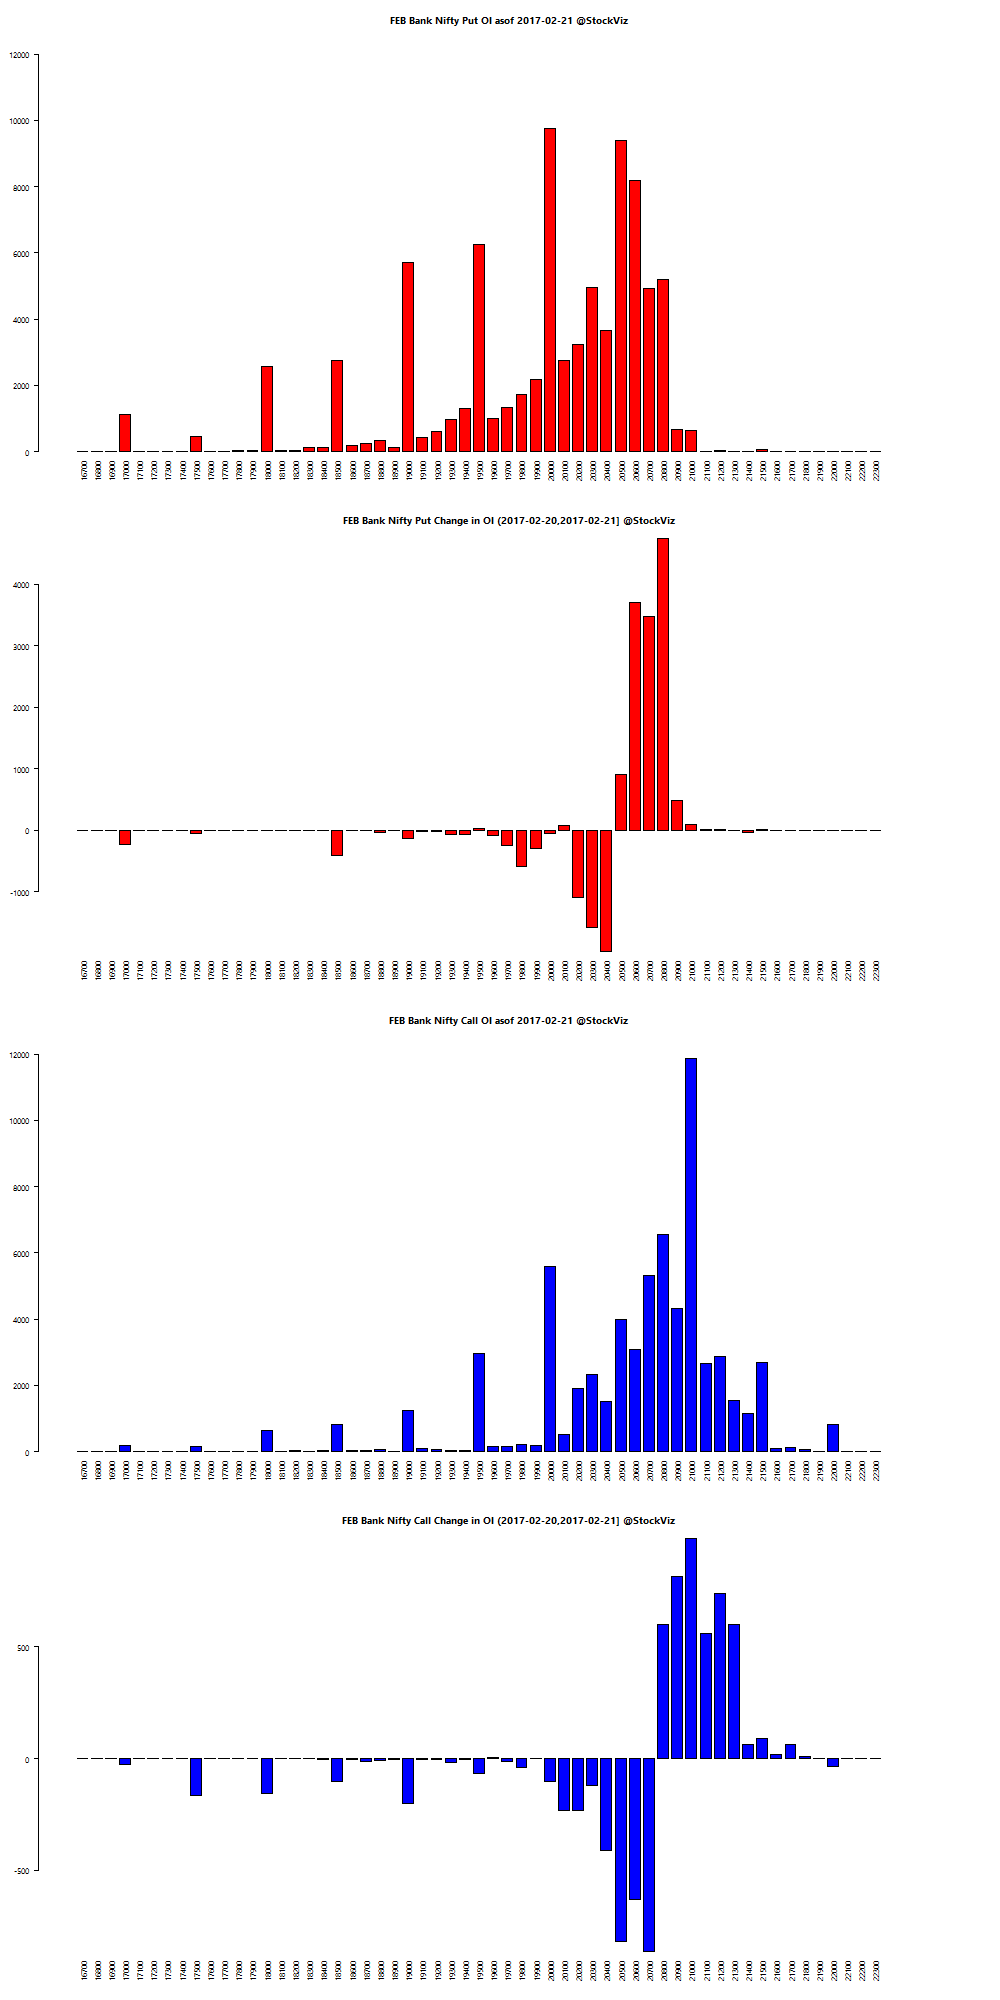 FEB BANKNIFTY OI chart